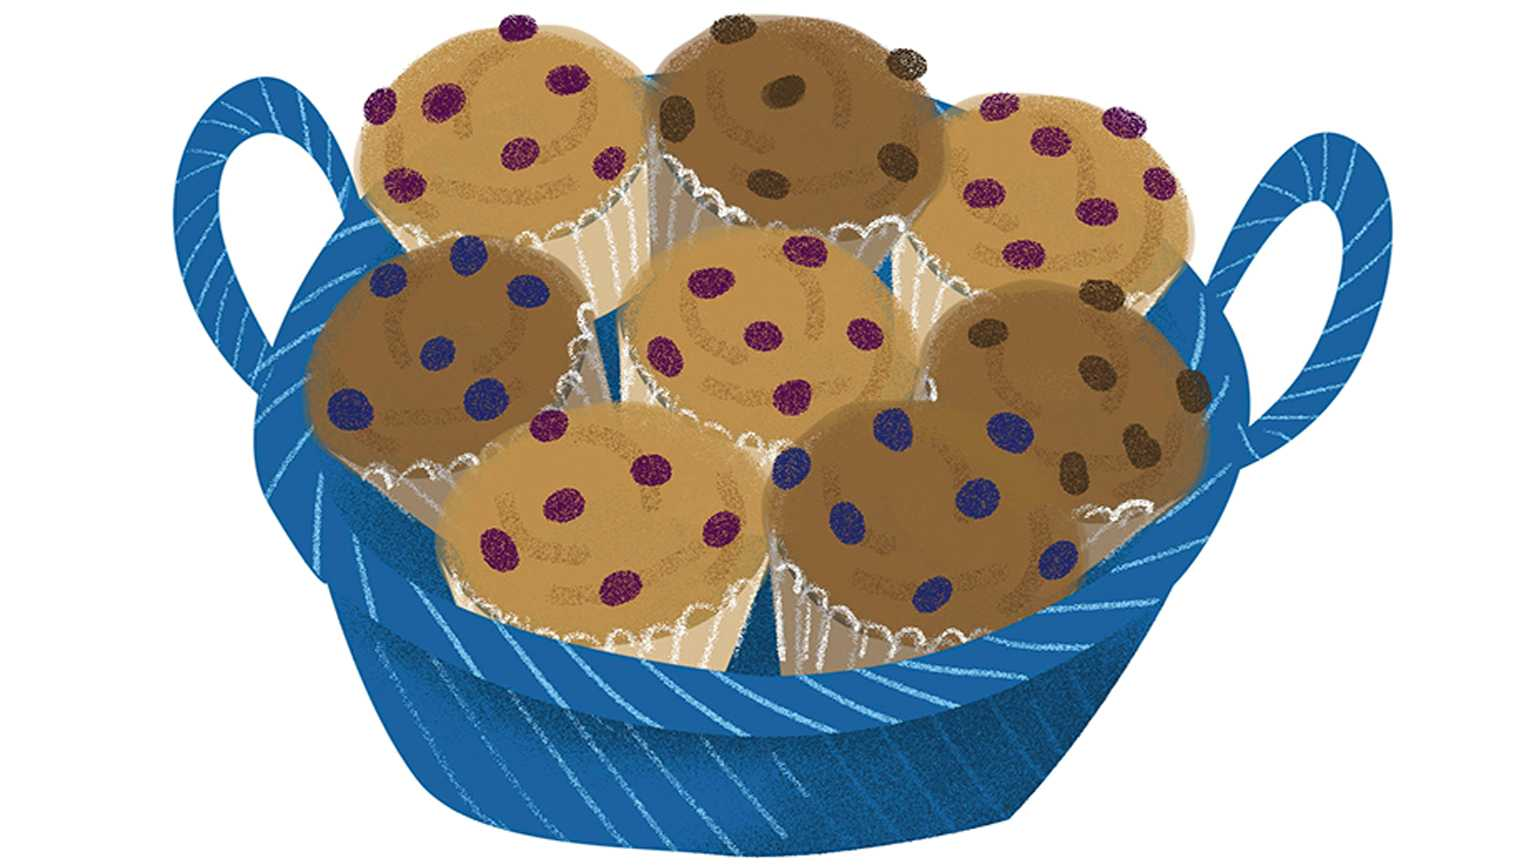 A blue basket full of assorted fresh muffins.